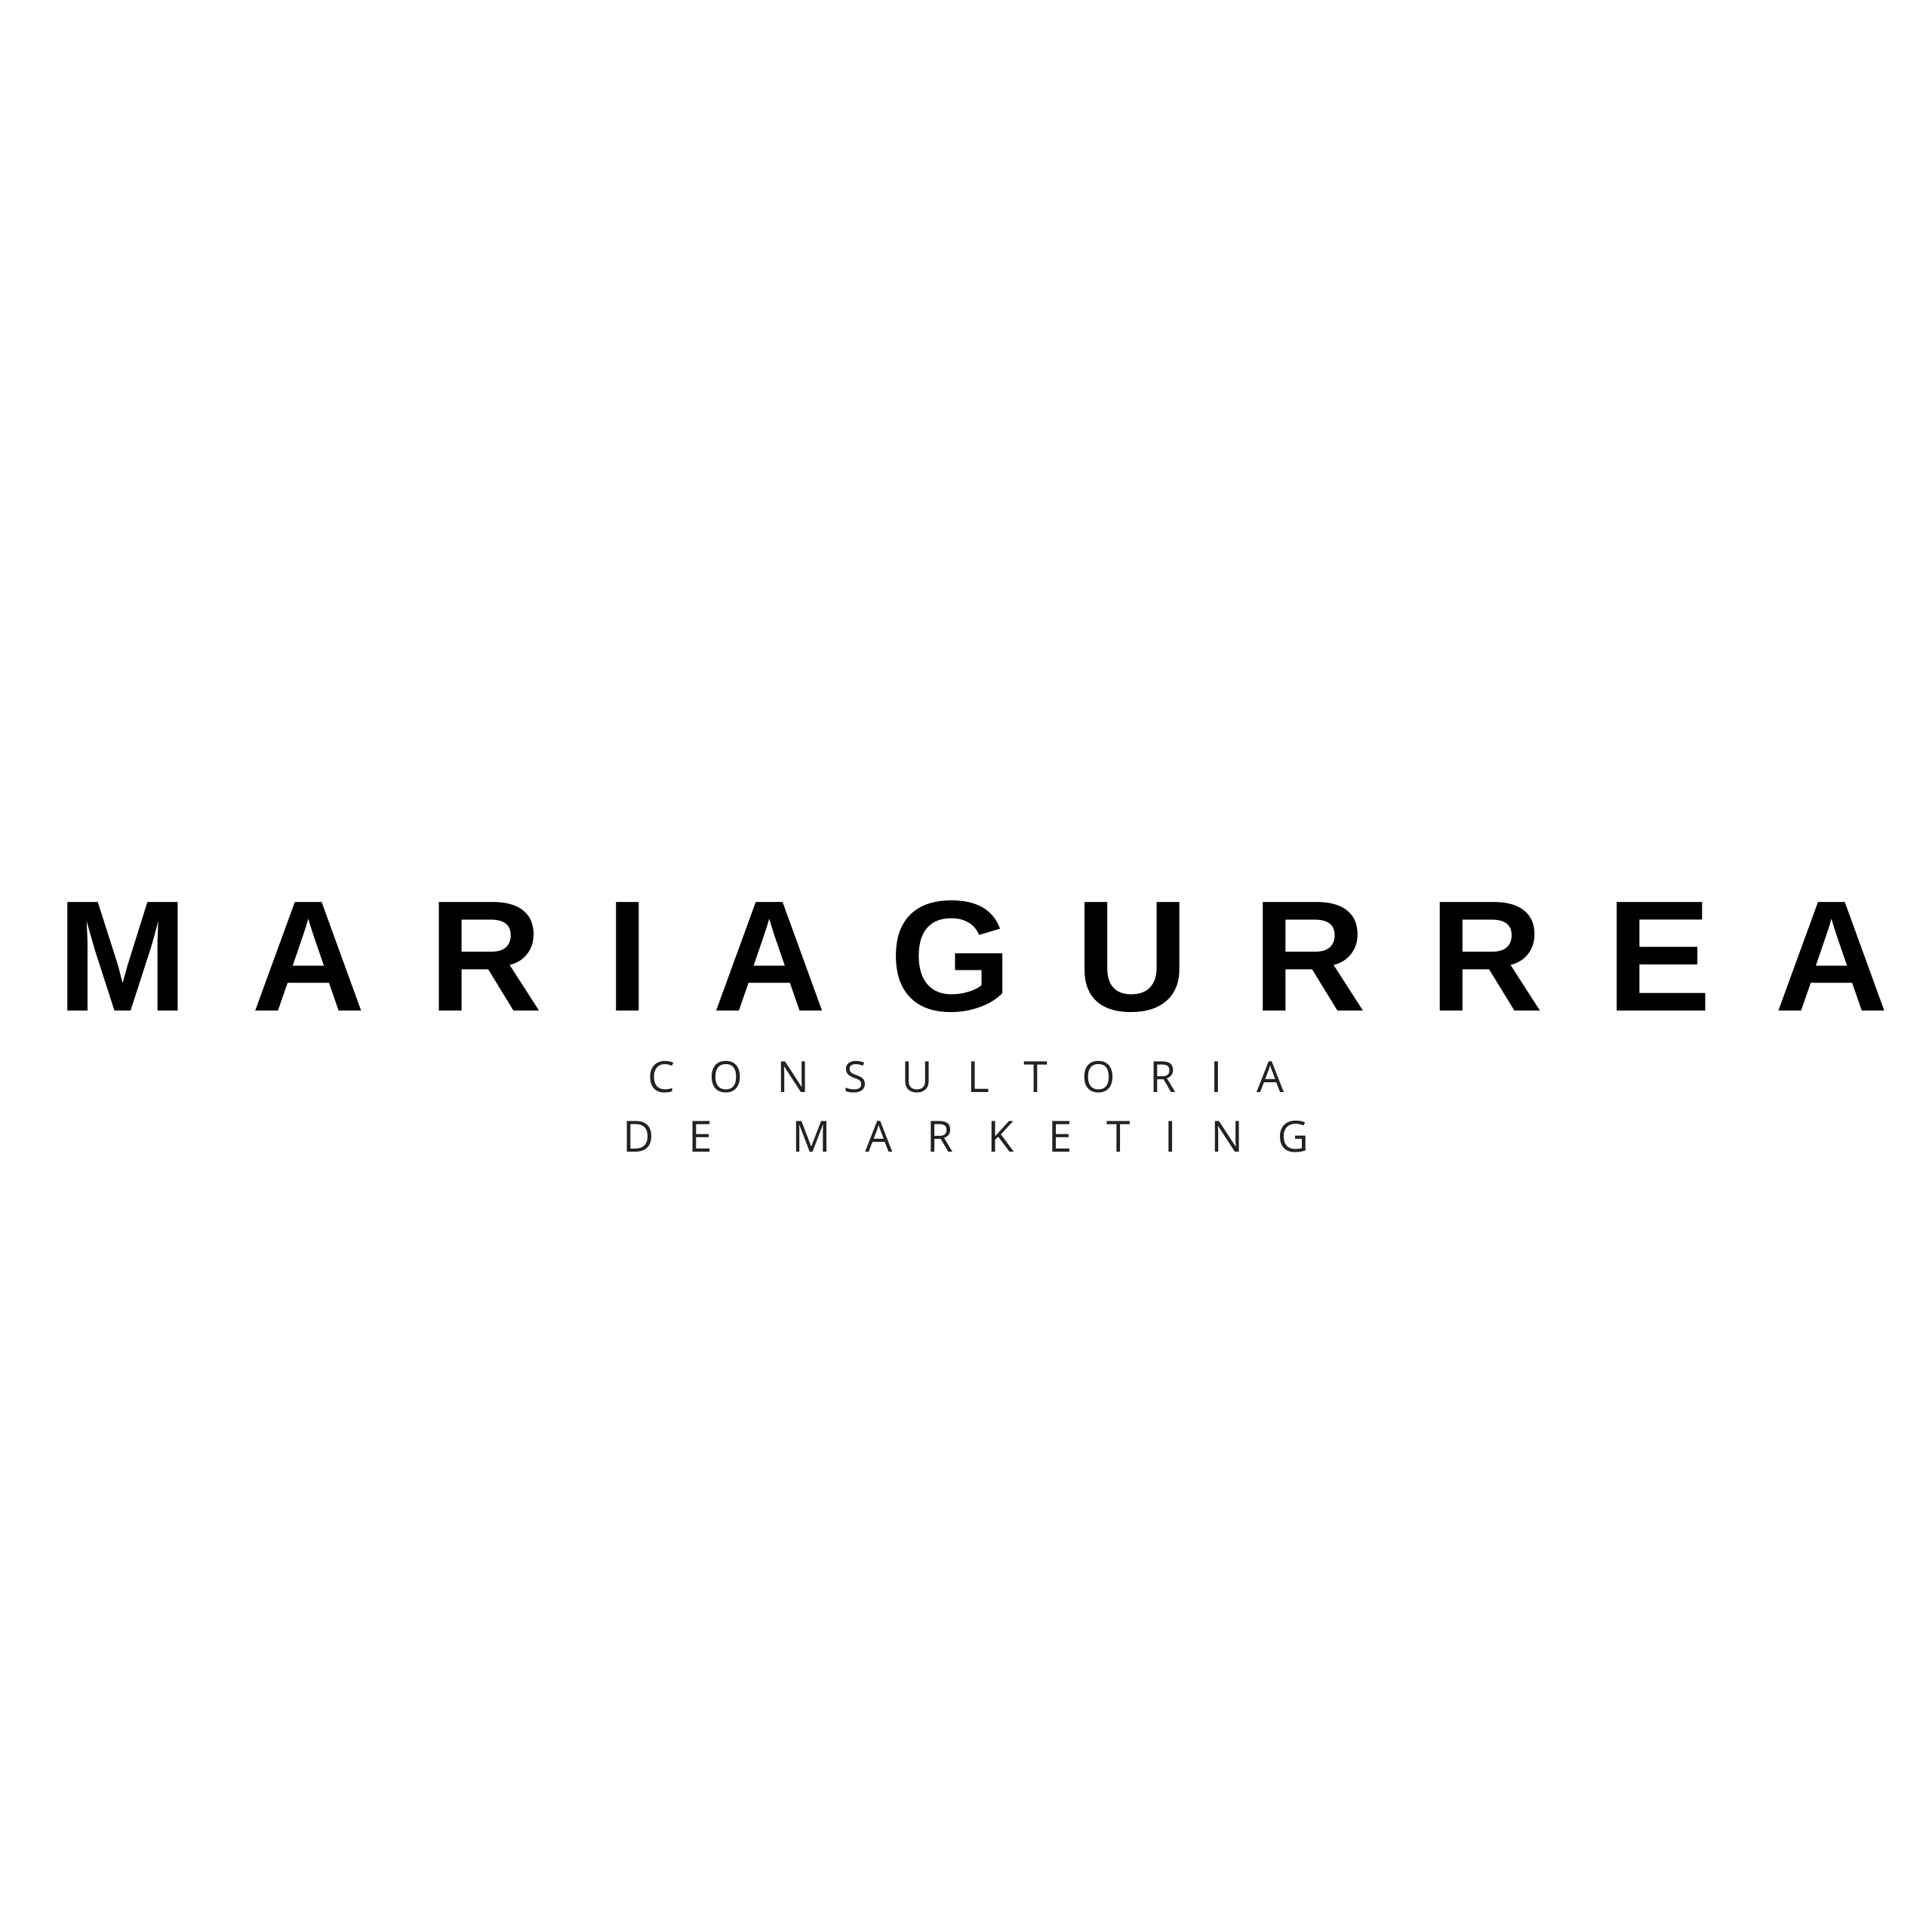 María Gurrea Consultoría de Marketing y Ventas